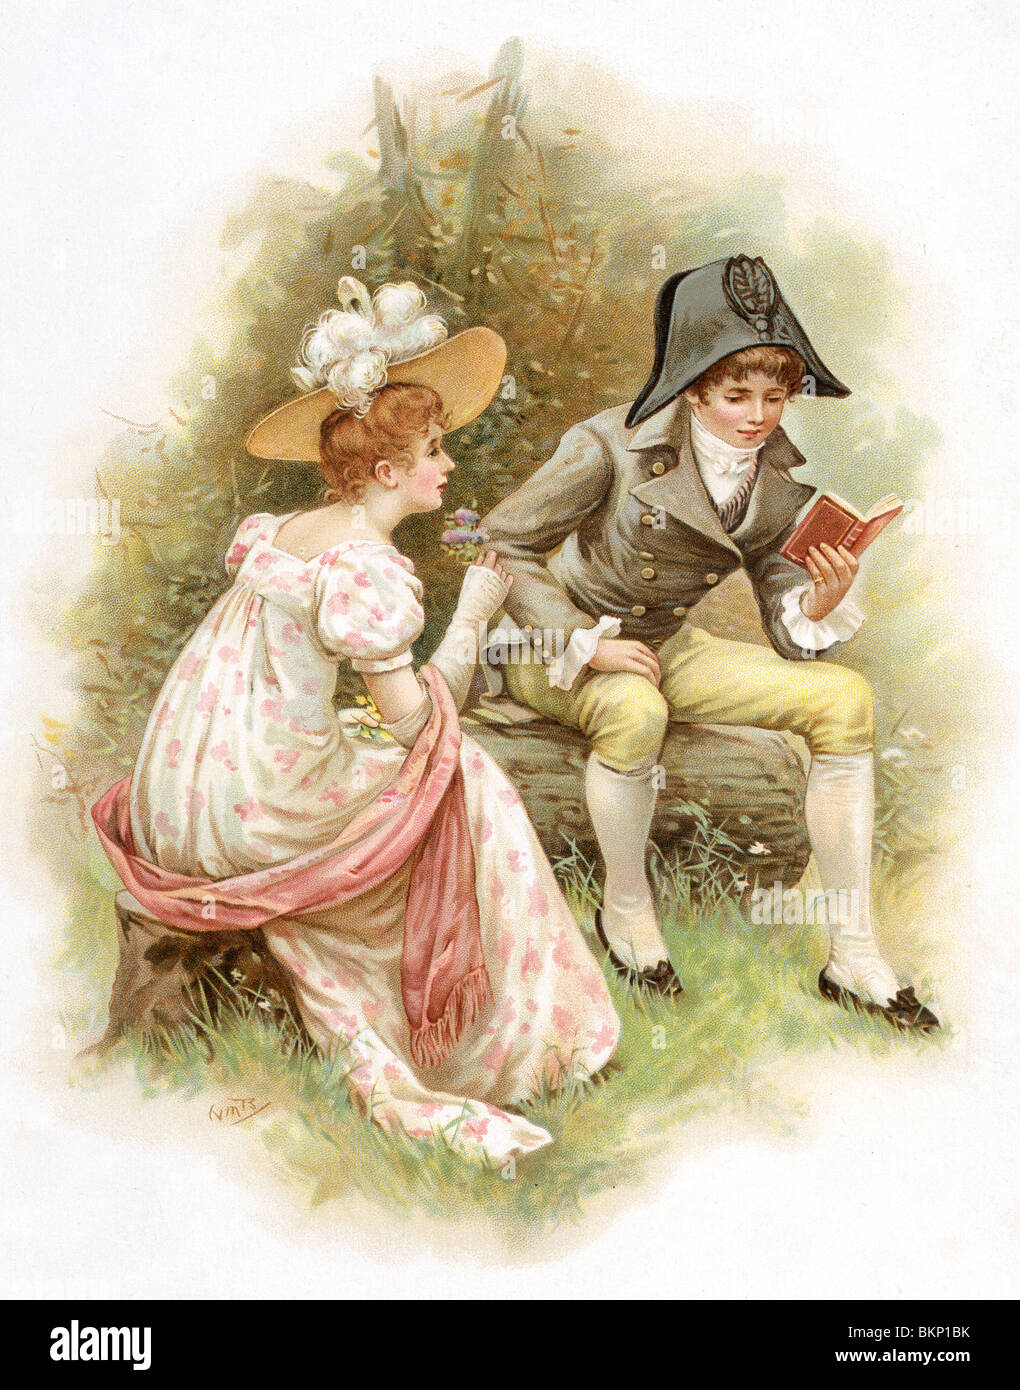 Young Man Reads a Story to a Young Lady - Stock Image